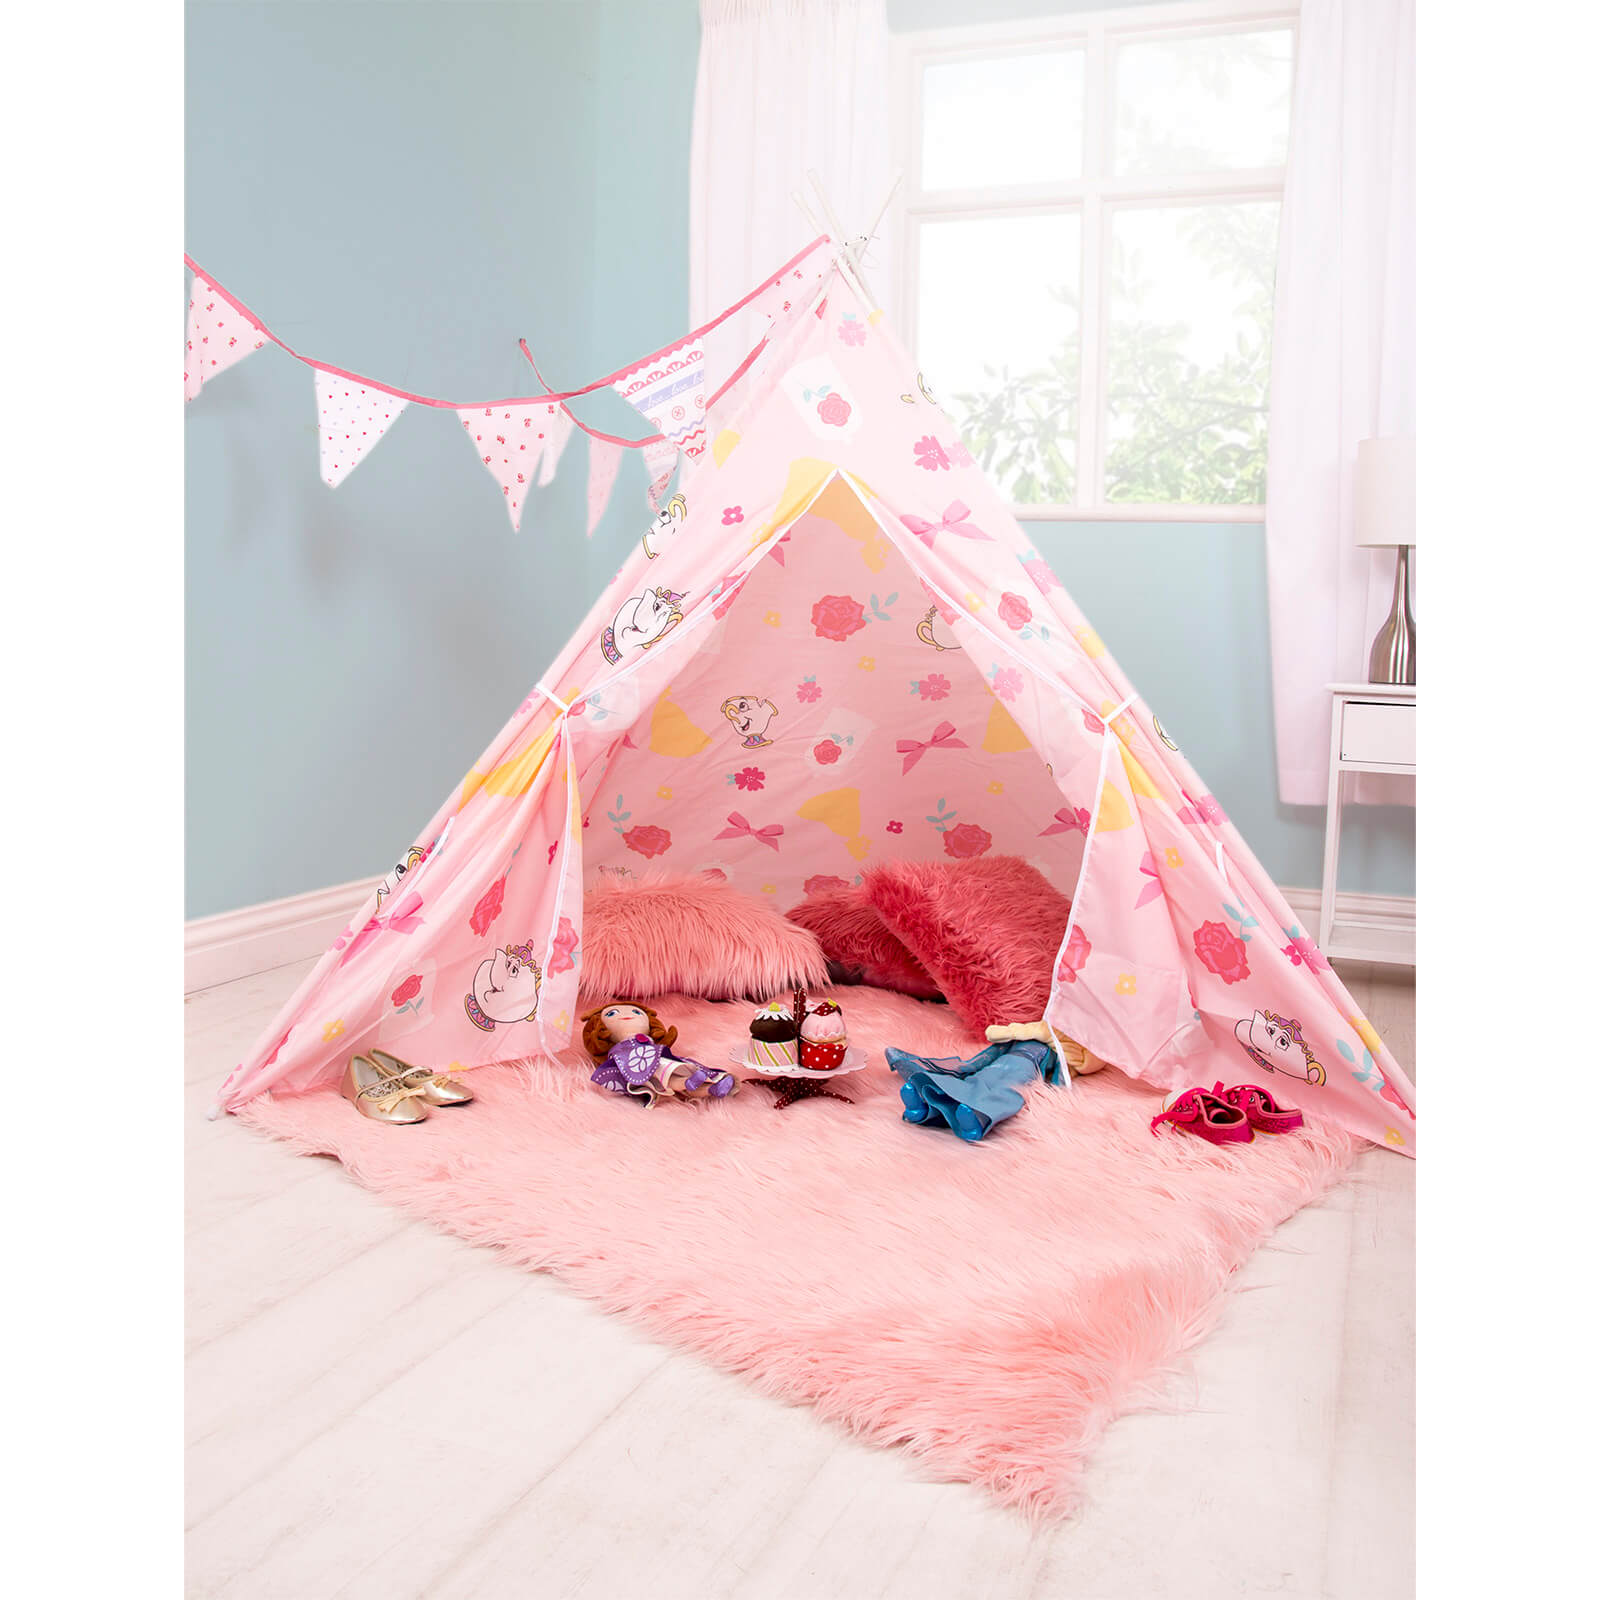 Disney Princess Beauty & The Beast Teepee